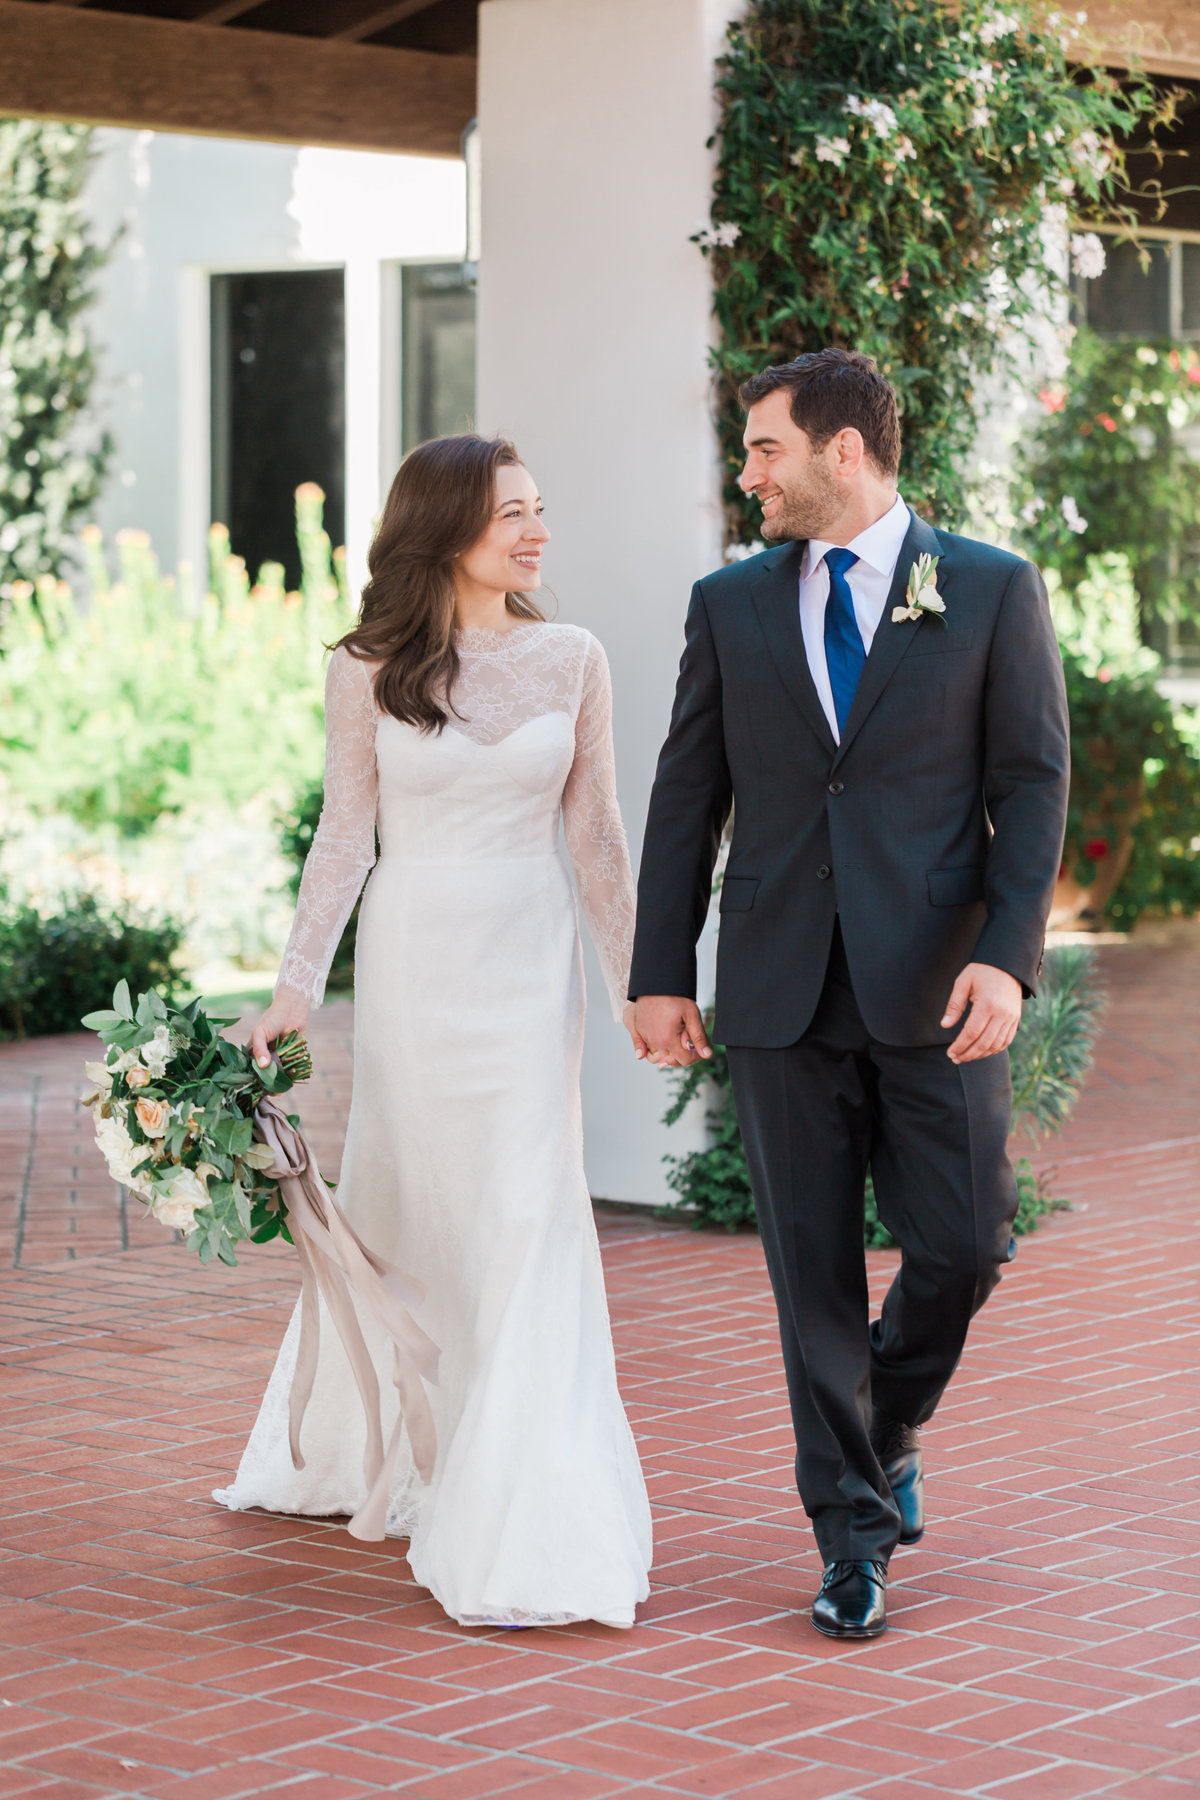 Carmel_Seaside_Chic_Wedding_Valorie_Darling_Photography - 59 of 134